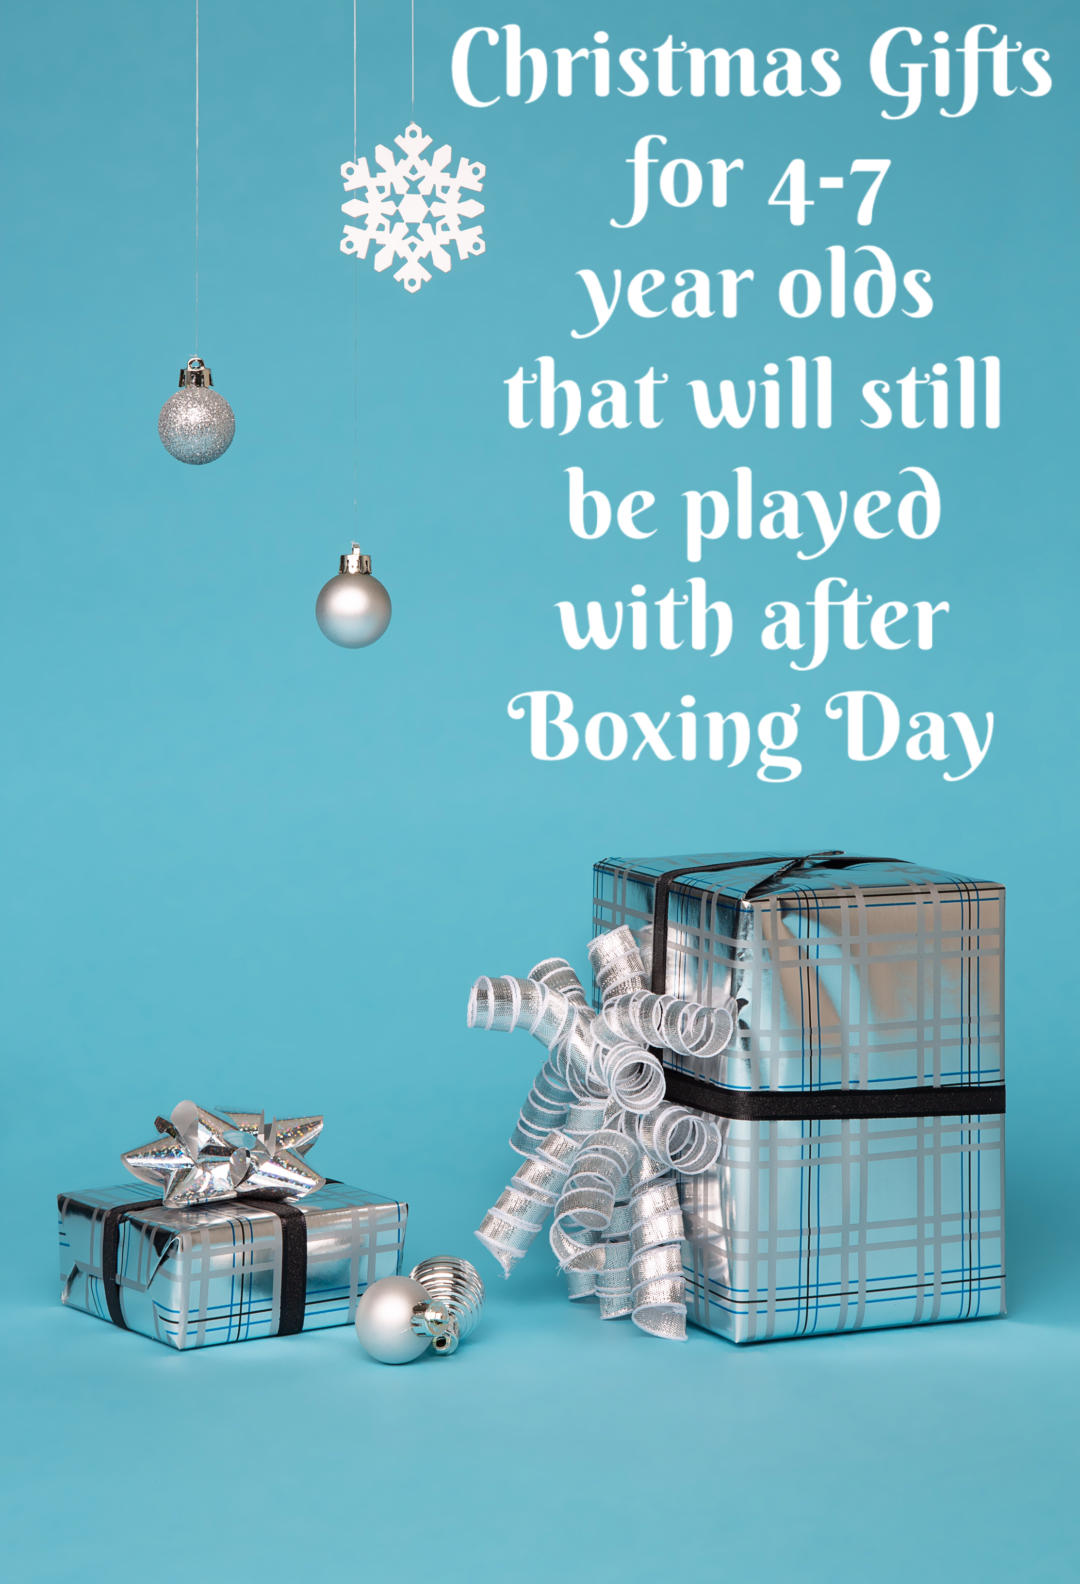 Christmas gifts for 4-7 year olds that will be played with after Boxing day